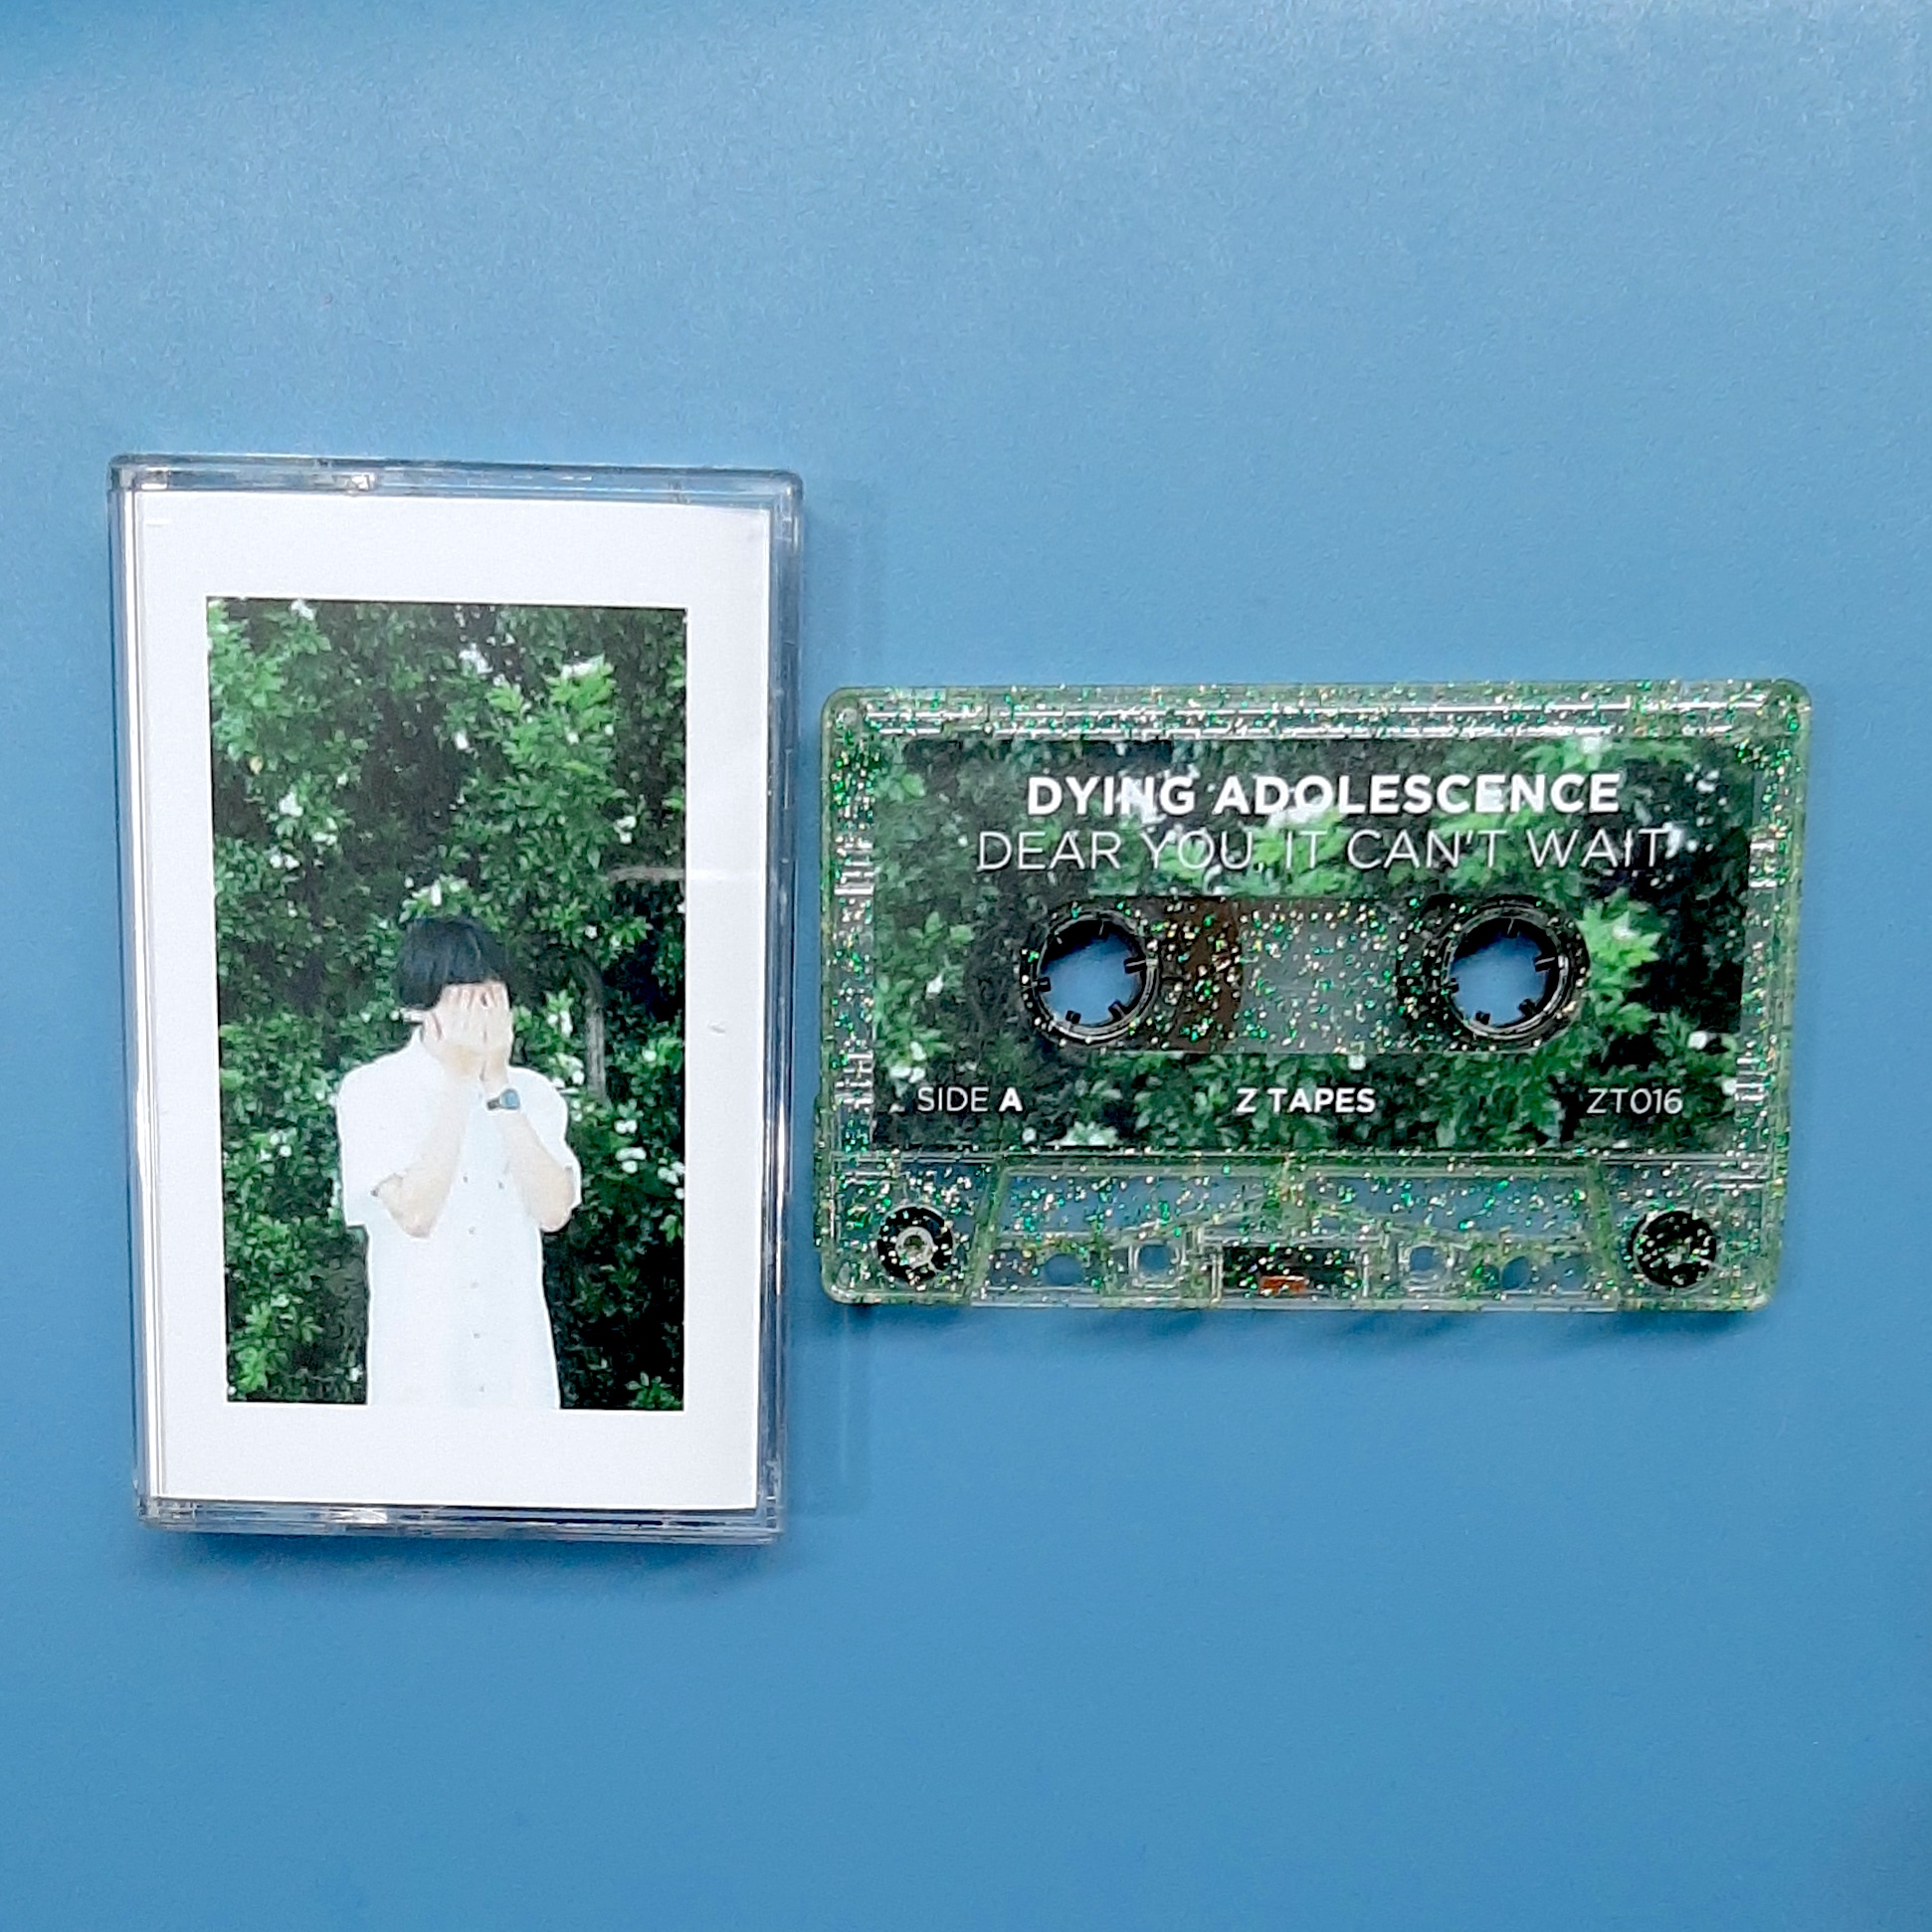 Dying Adolescence - Dear You, It can't wait. (Z Tapes)